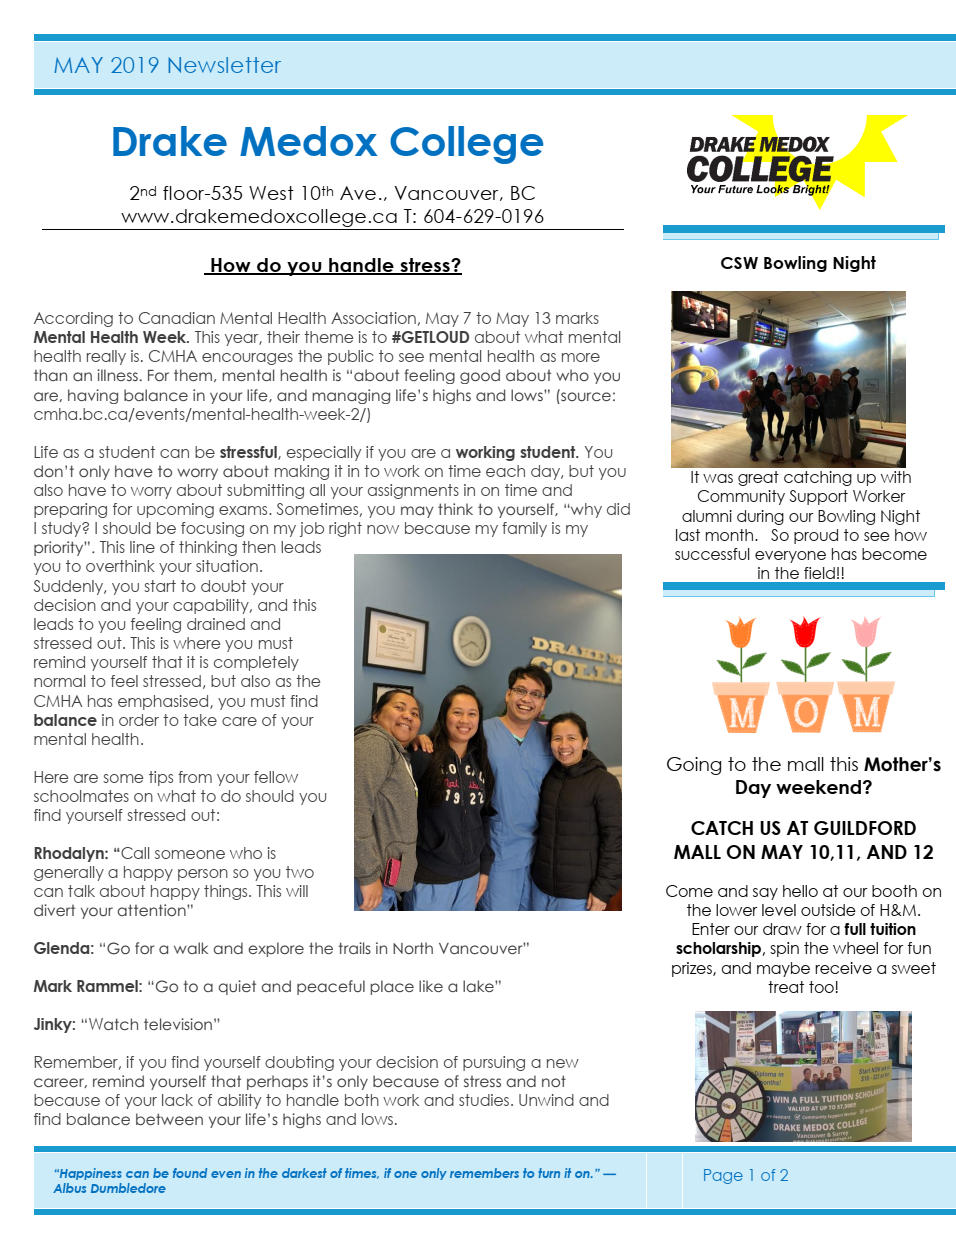 """6cdfa81f5d6 ... at DMC sat me in her office and explained to me the full process down  to what my financial options were. Drake Medox College treated me like  family."""""""